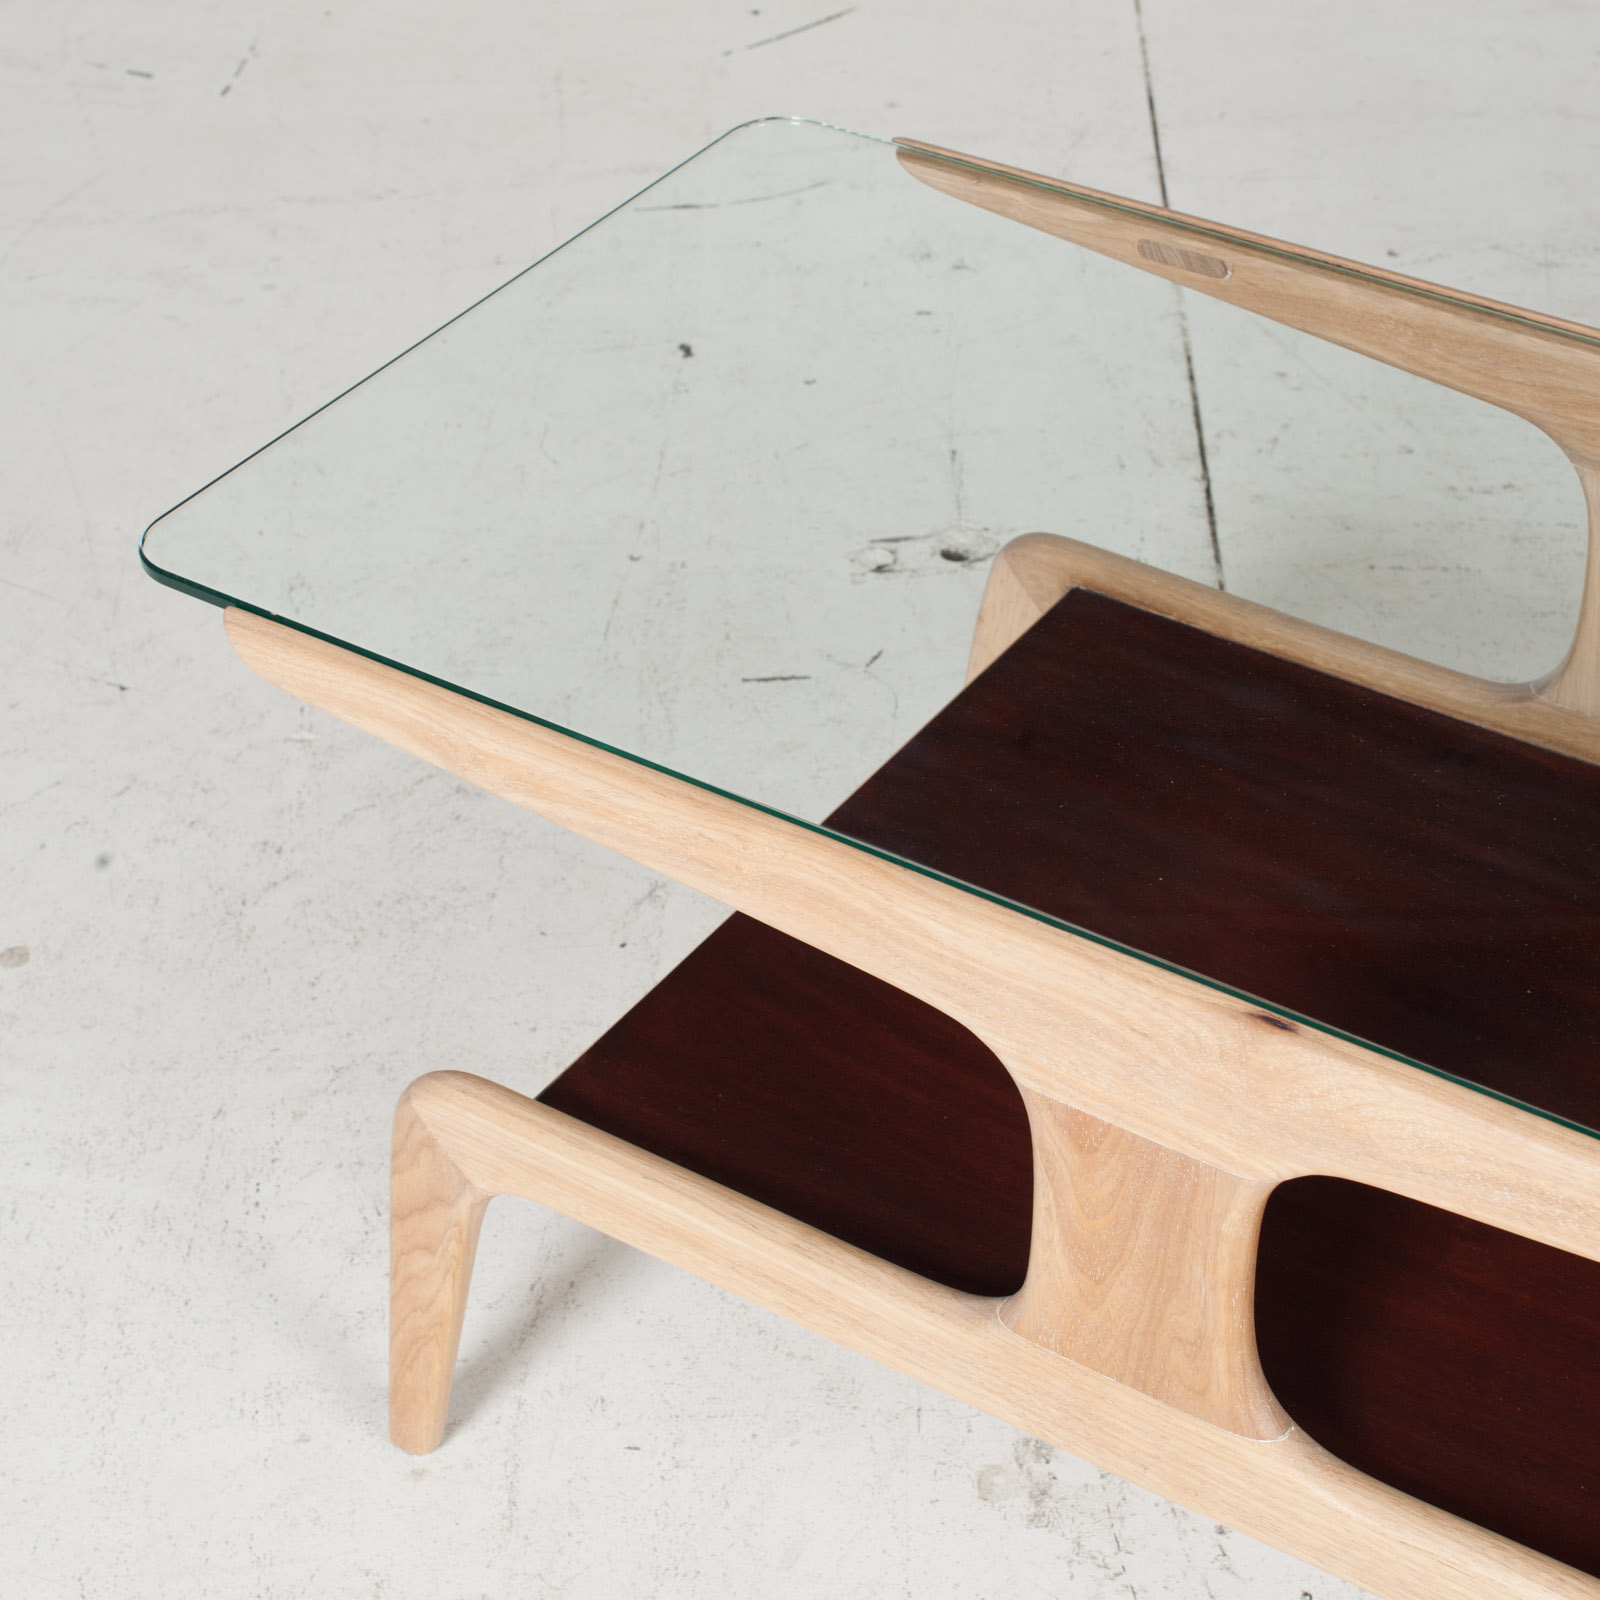 Coffee Table By Gio Ponti For Domus Nova, 1920s, Italy 5